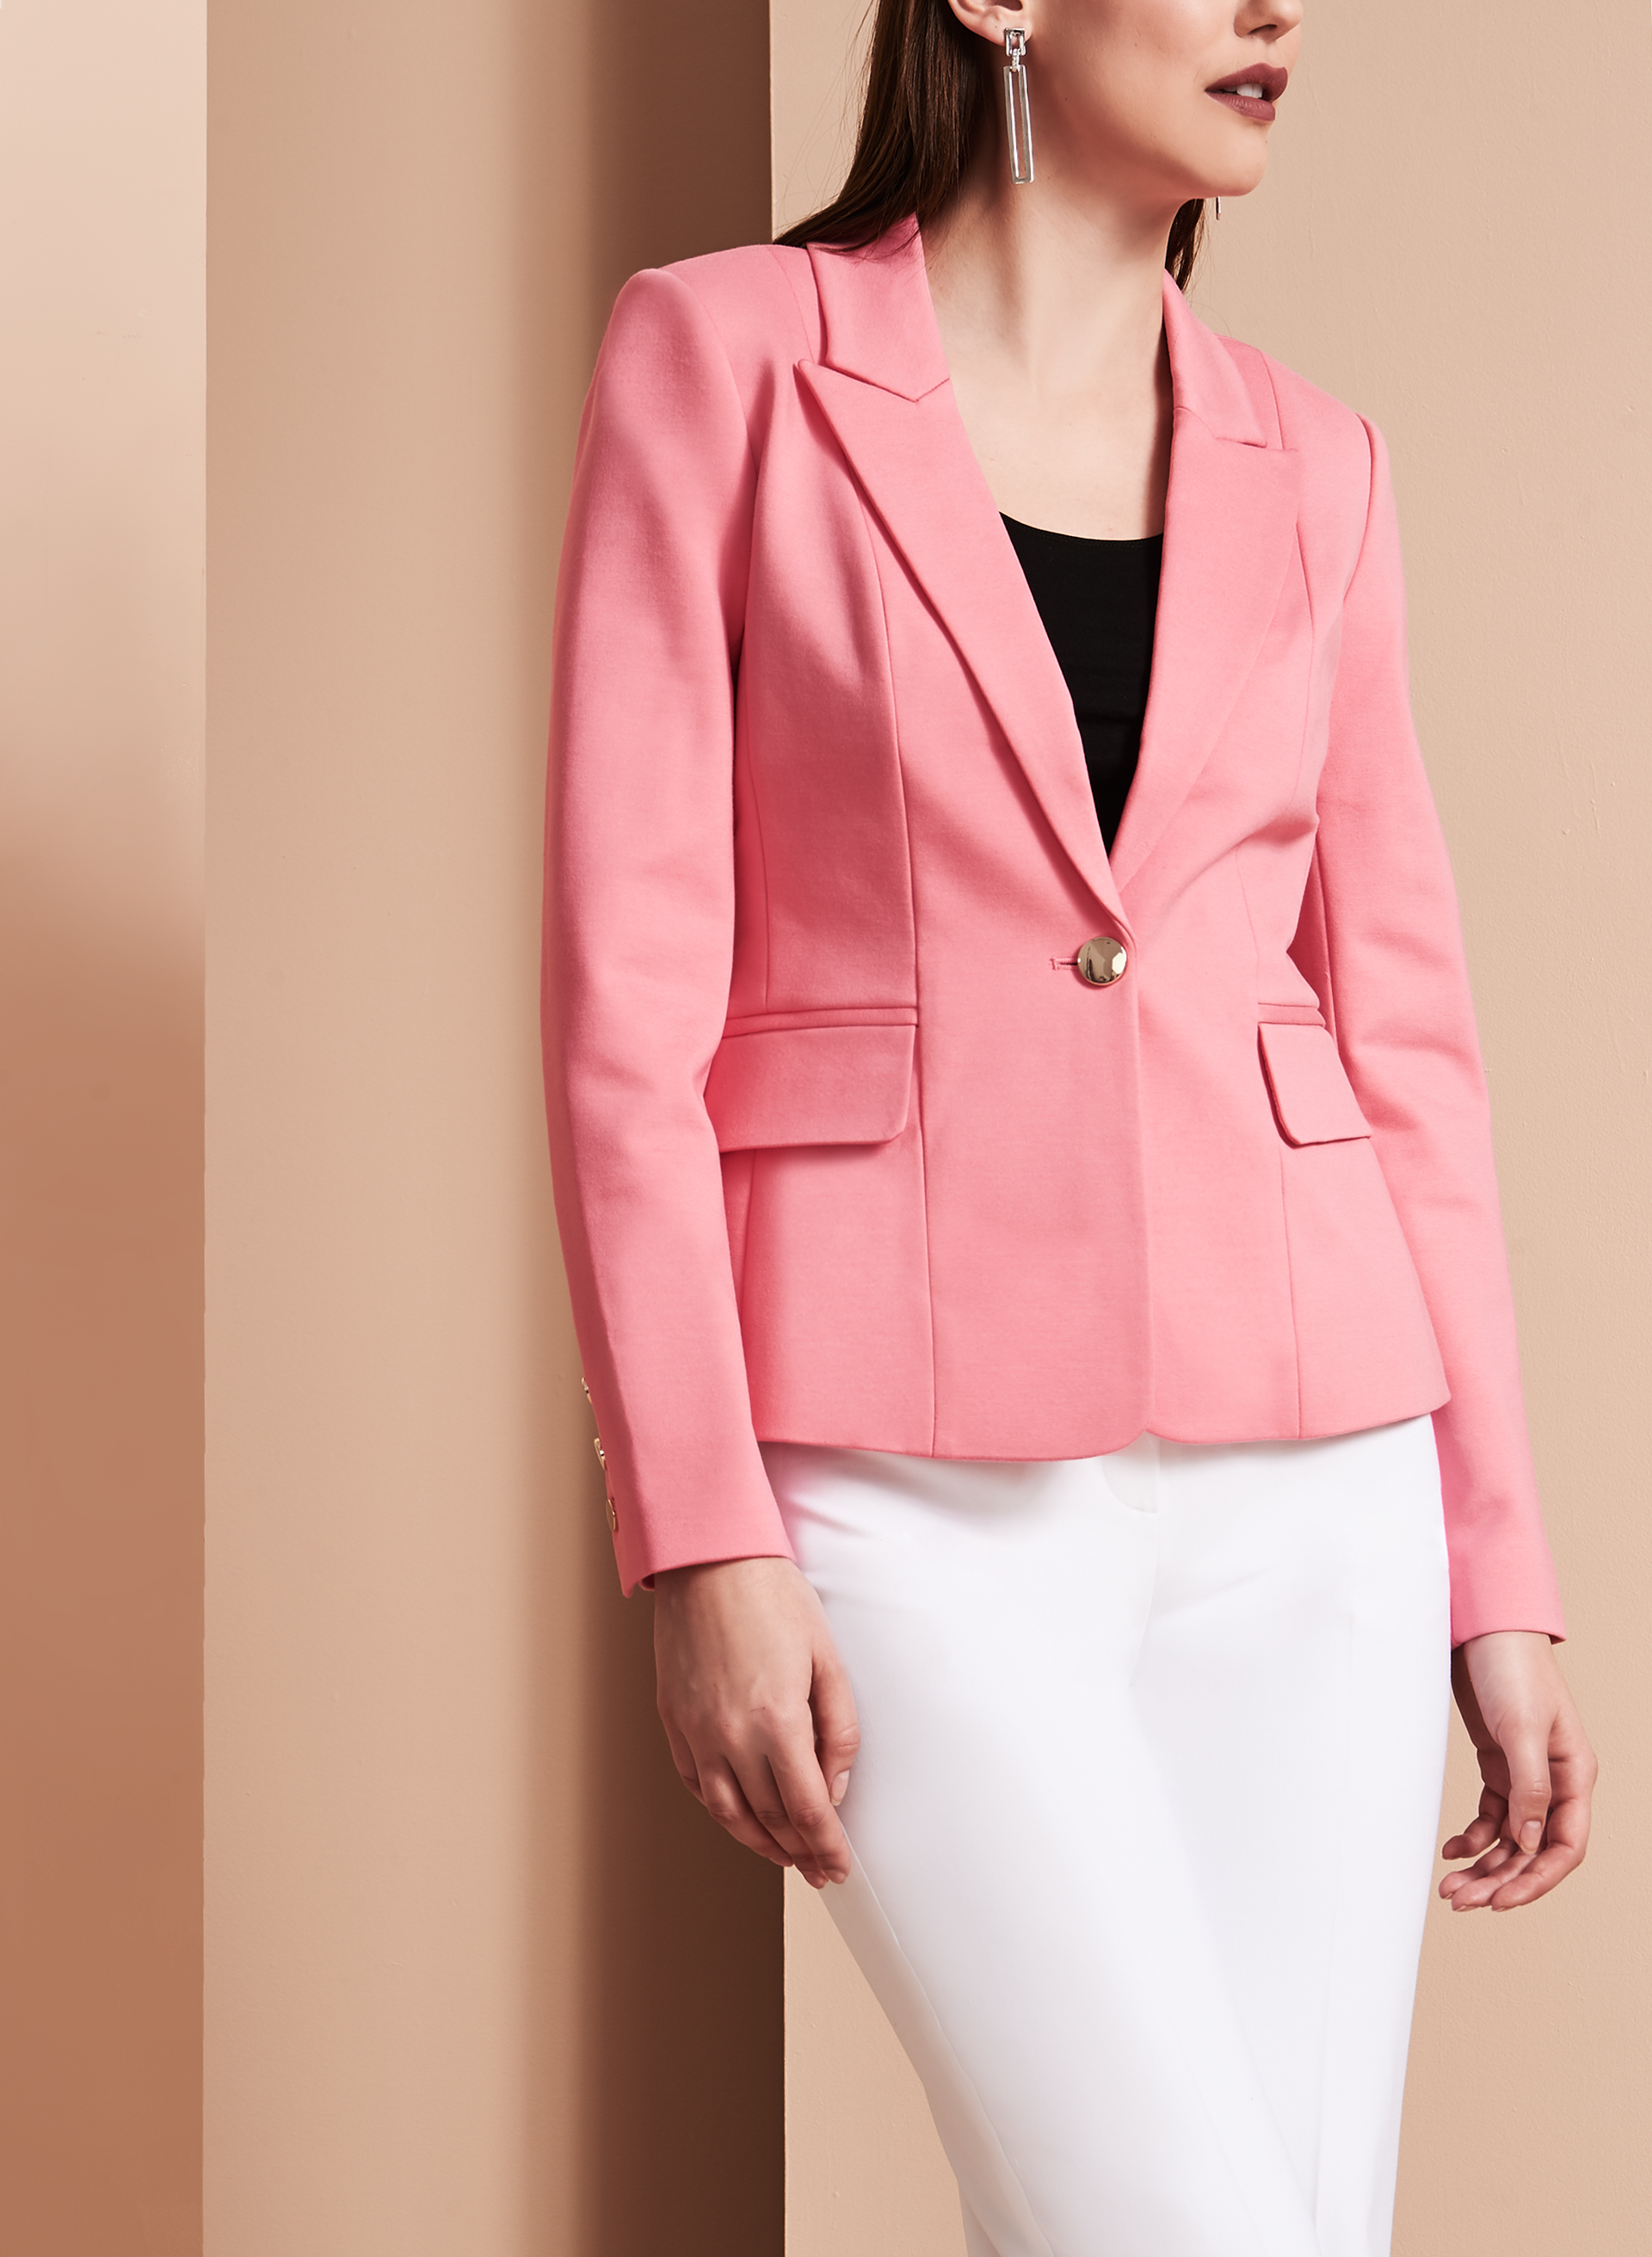 One-Button Blazer, Pink, hi-res